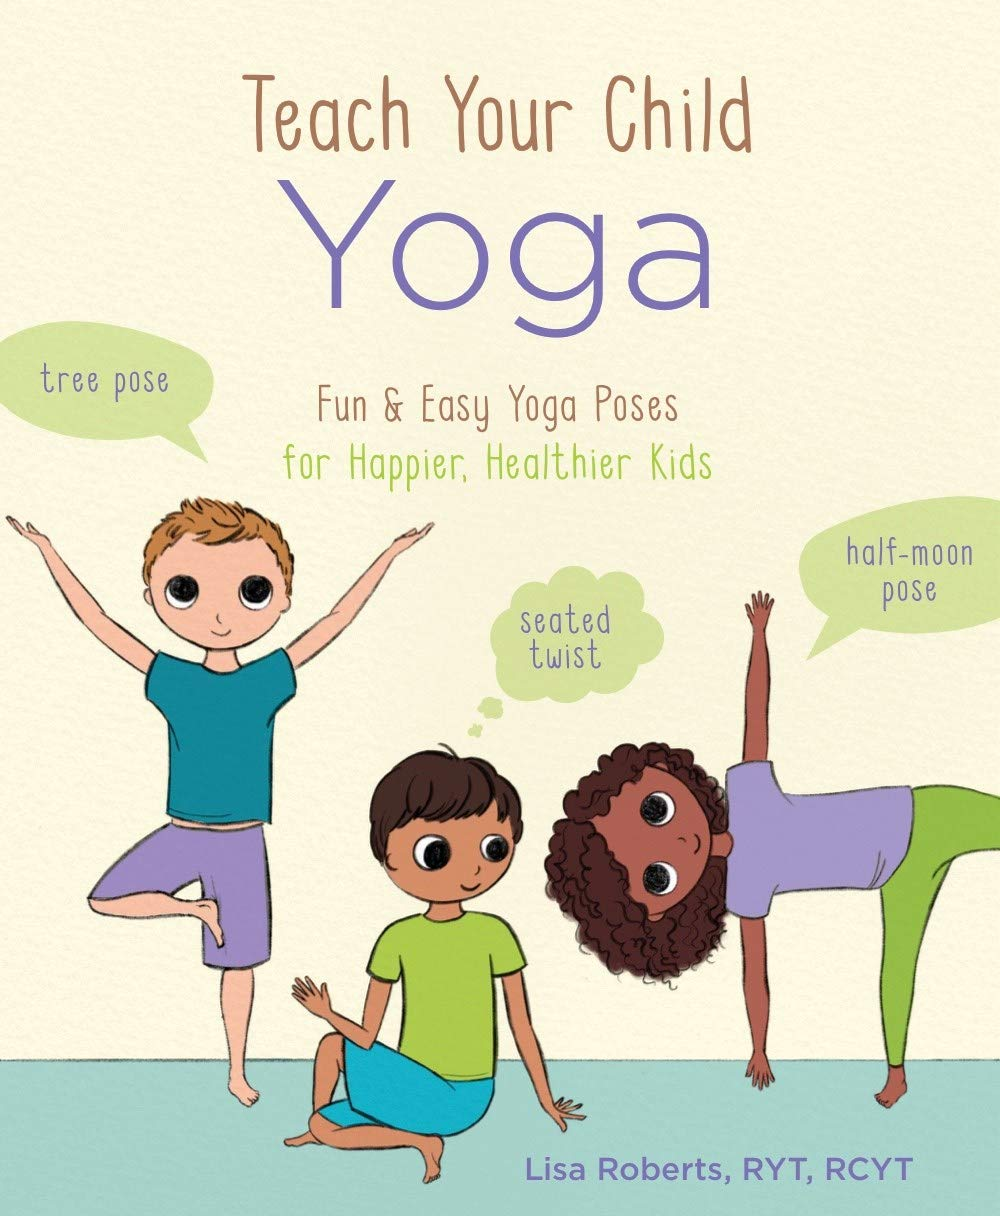 Teach Your Child Yoga Fun Easy Yoga Poses For Happier Healthier Kids Roberts Lisa 9781454933465 Amazon Com Books